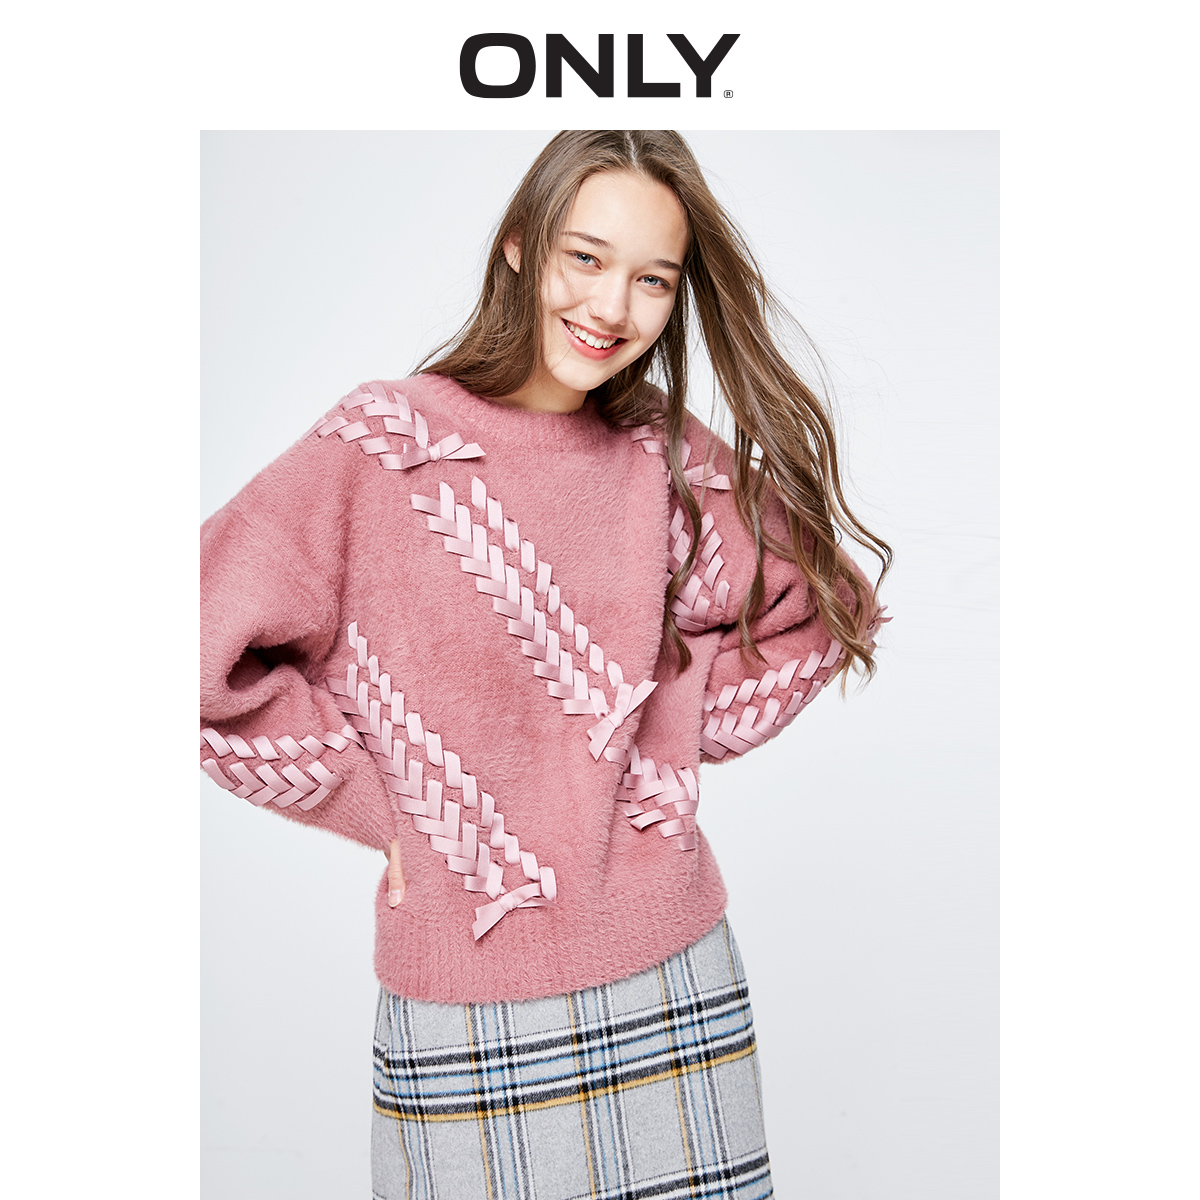 ONLY  Summer New Loose Tie-up Suede Pullover Sweater |  119113536